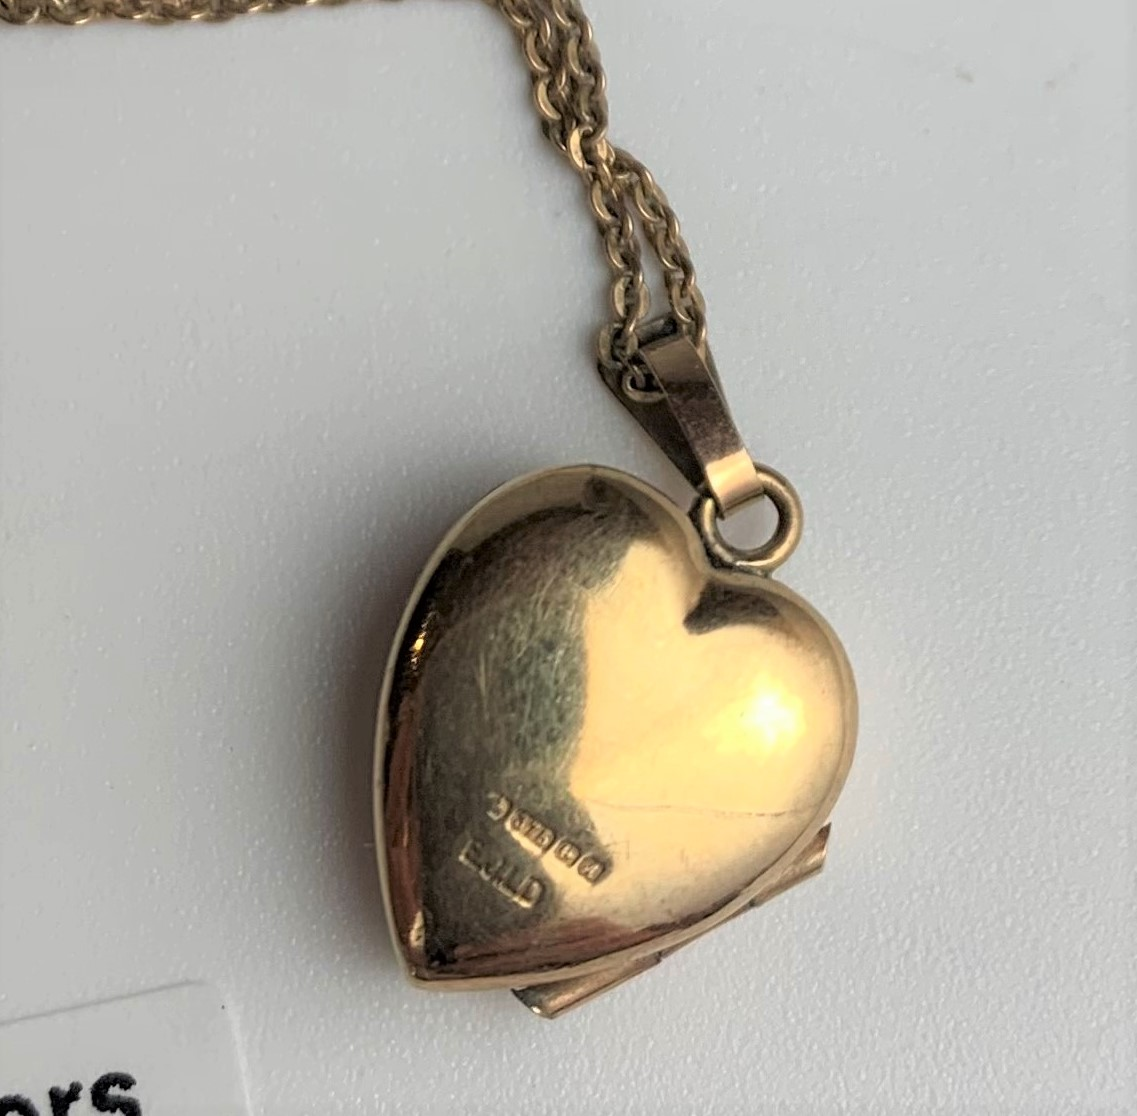 """9k gold necklace with heart locket, length 16"""" plus 1"""" locket, and 9k gold necklace, 15"""" length. - Image 4 of 5"""